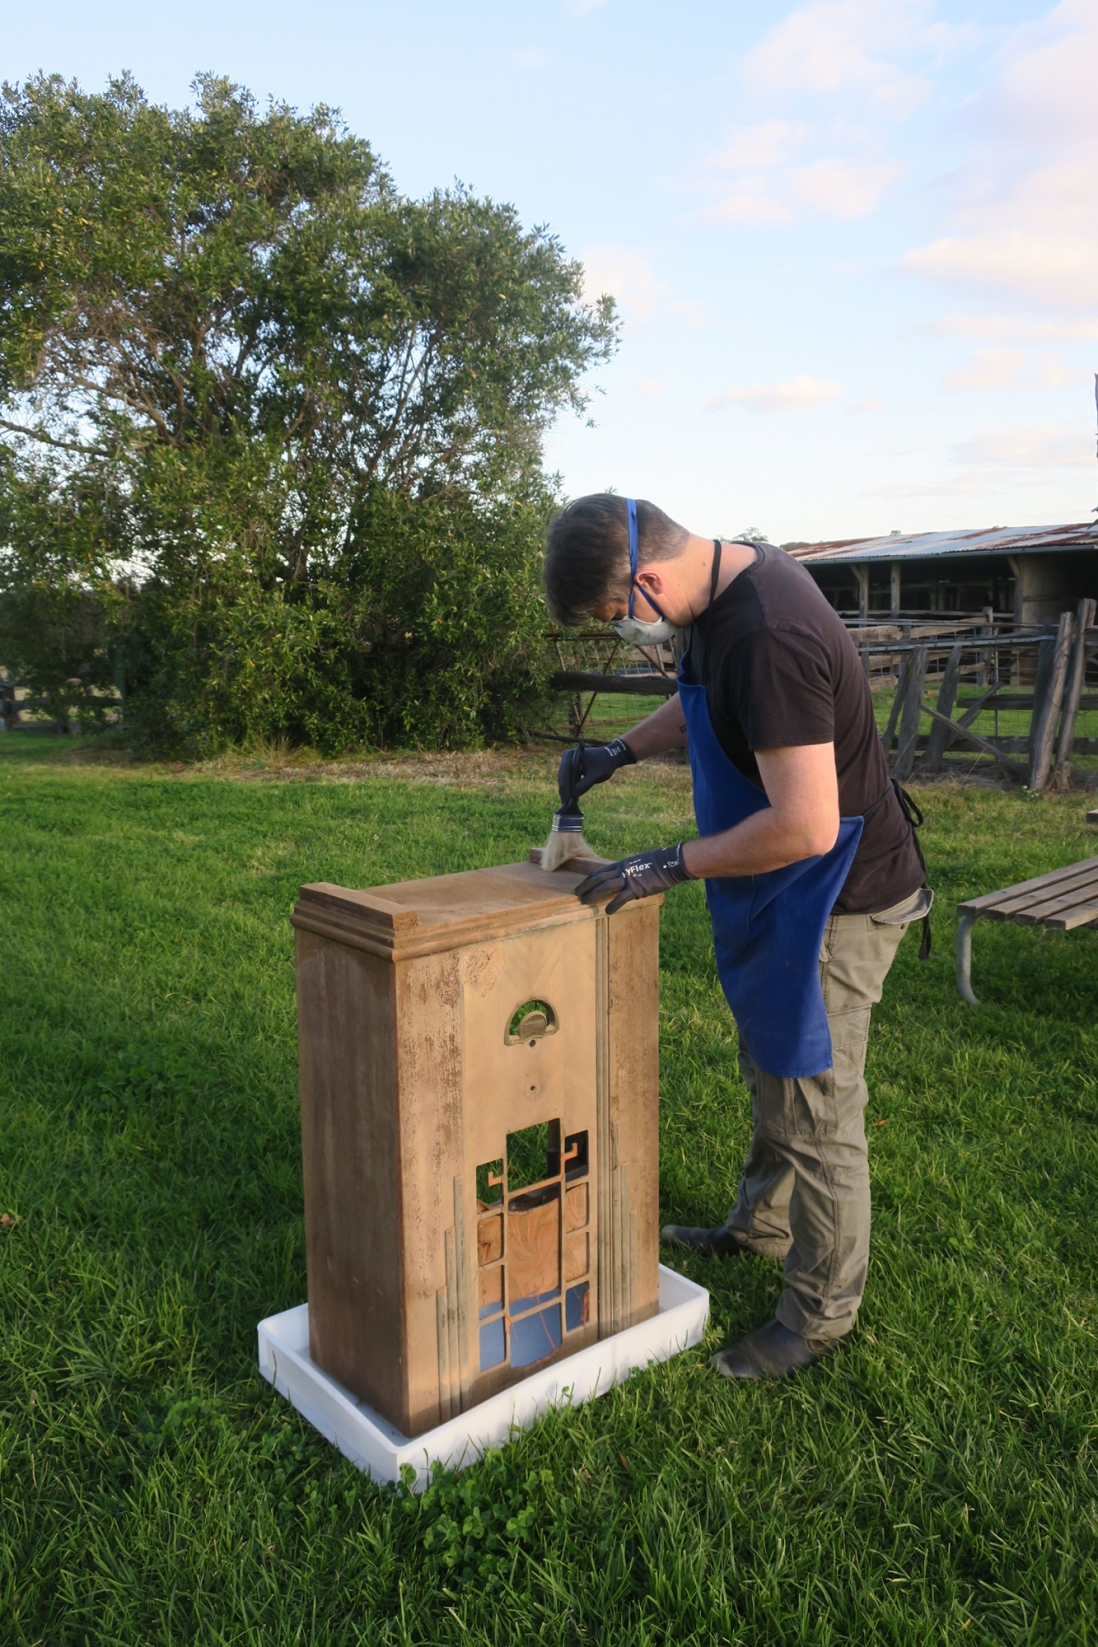 Outdoors shot of man cleaning wooden radio cabinet.